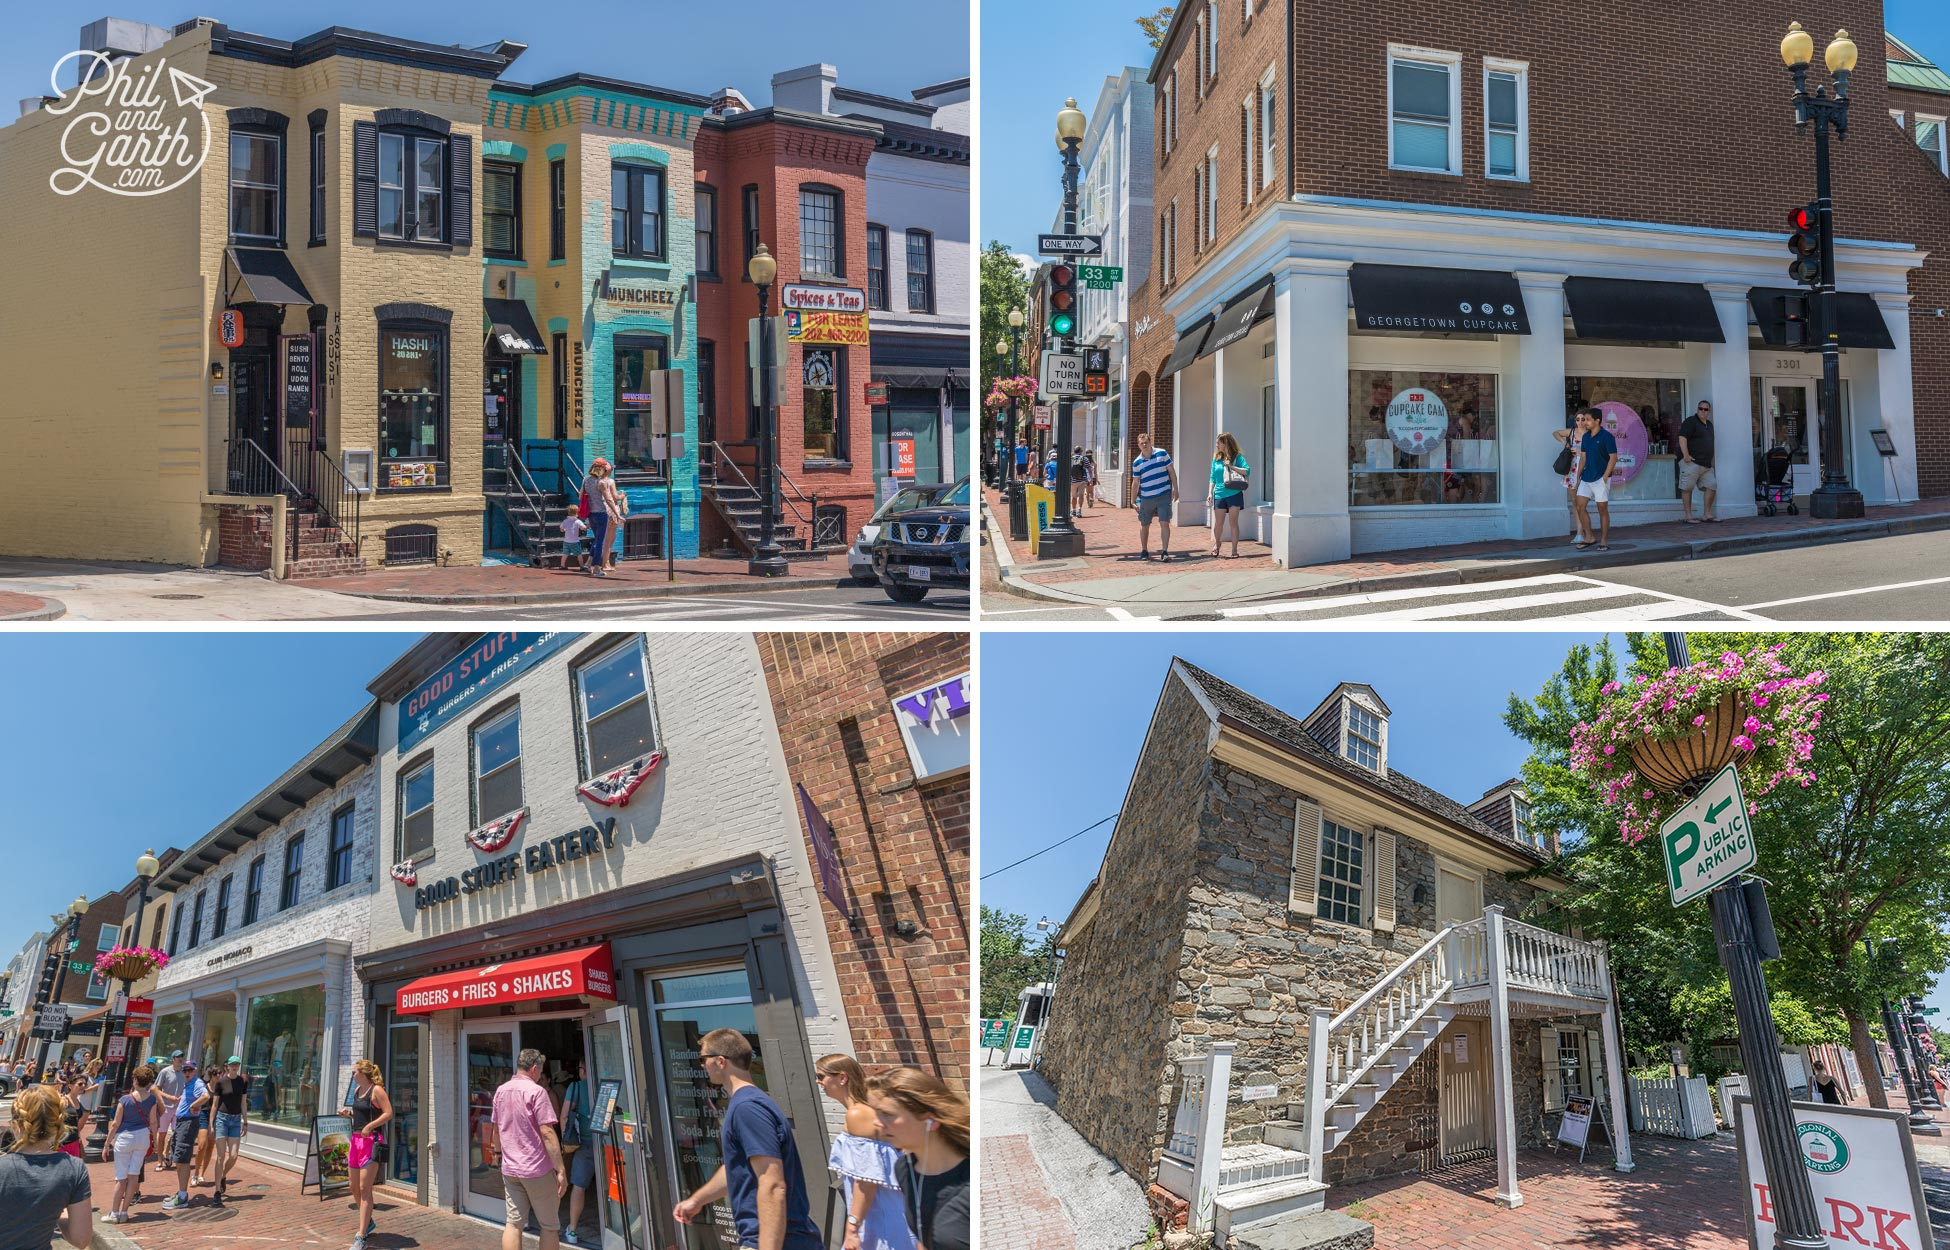 Look out for the The Old Stone House which is actually the oldest building in the whole of Washington DC (bottom right)